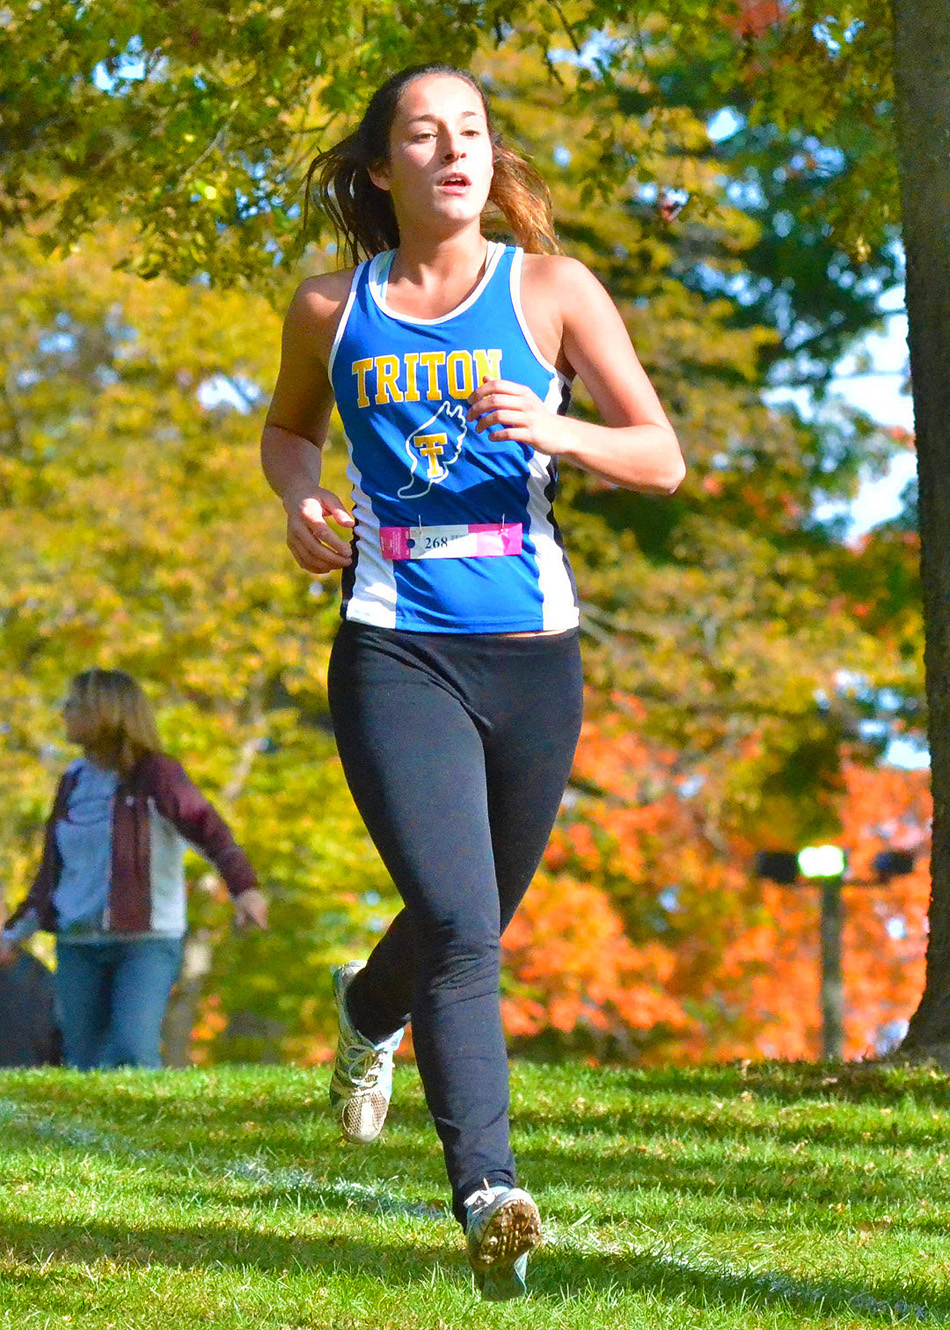 Makayla Musilli of Triton is one of two girls, along with Bailey McIntire, to qualify for the Culver Academy Regional.